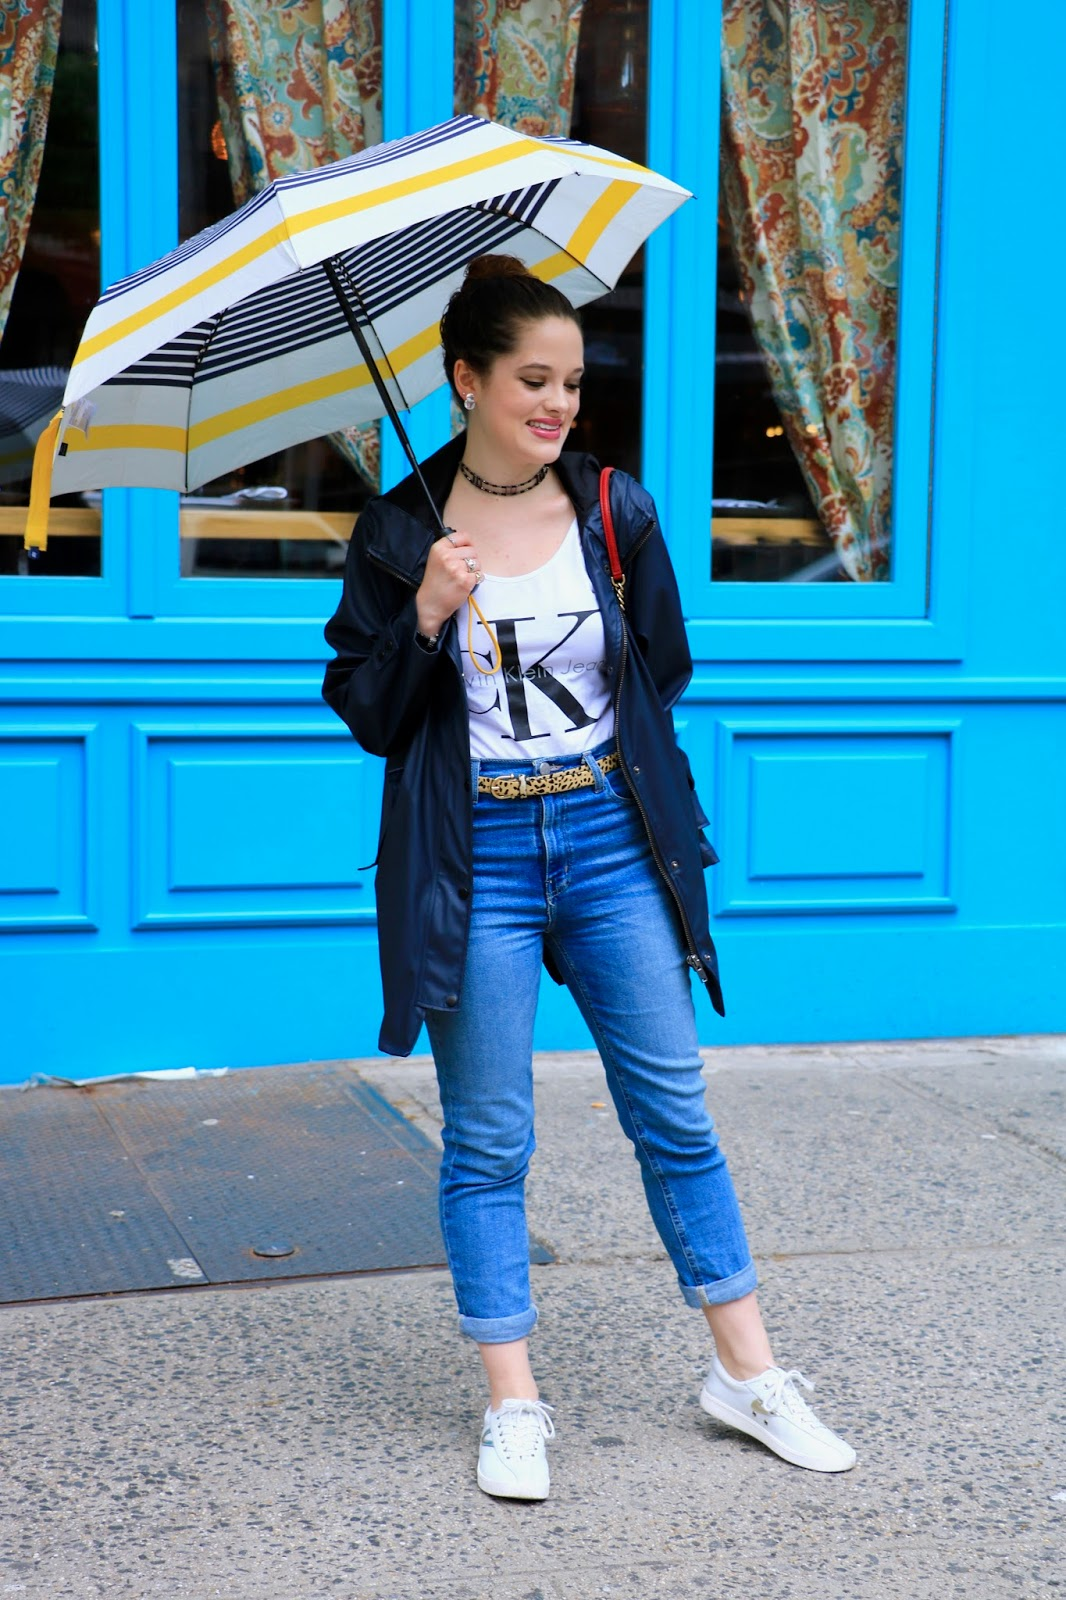 NYC fashion blogger Kathleen Harper wearing a rainy day outfit